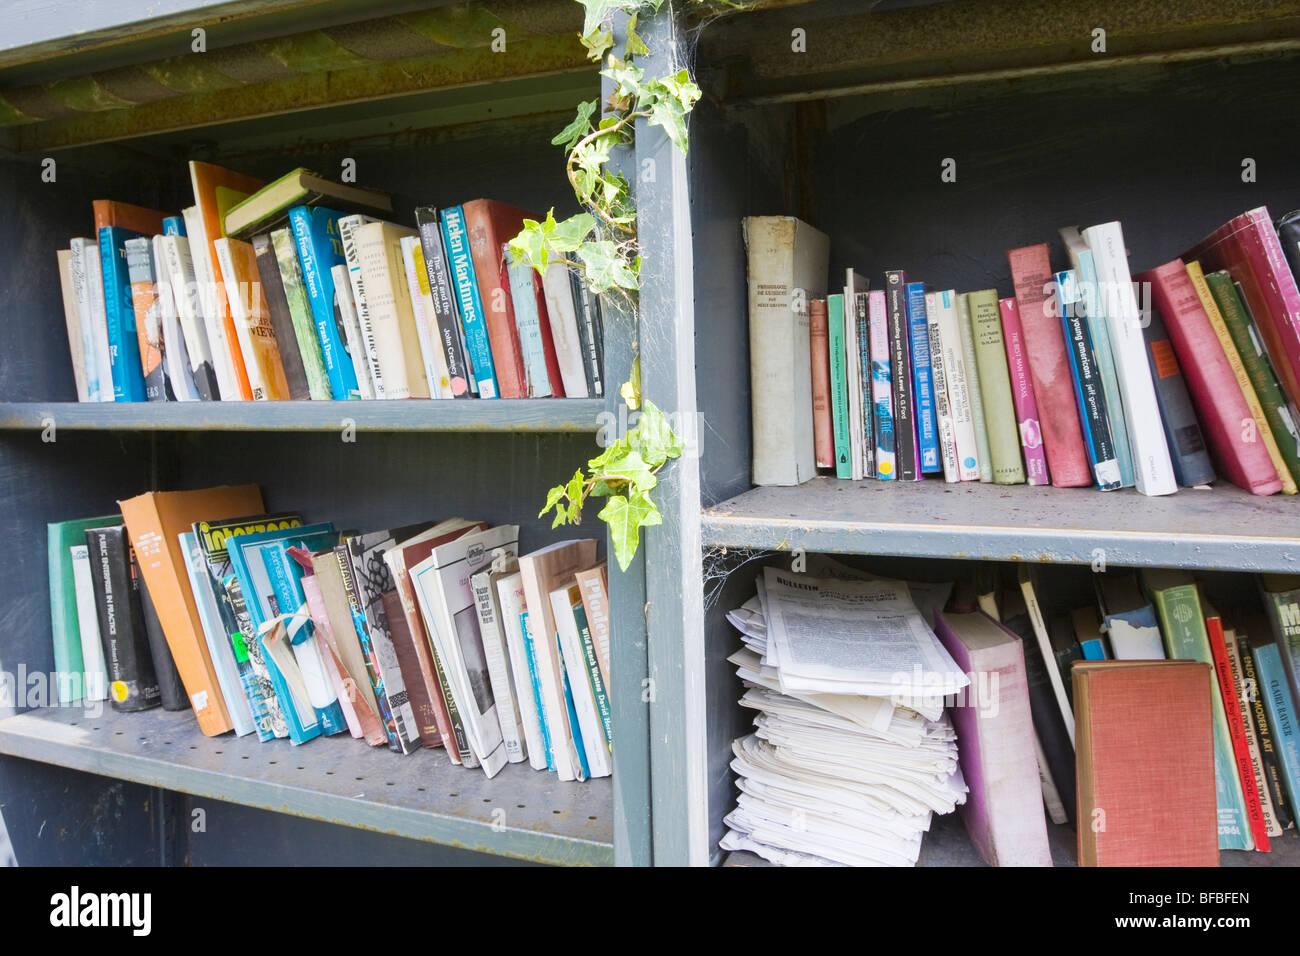 Shelves full of secondhand books - Stock Image